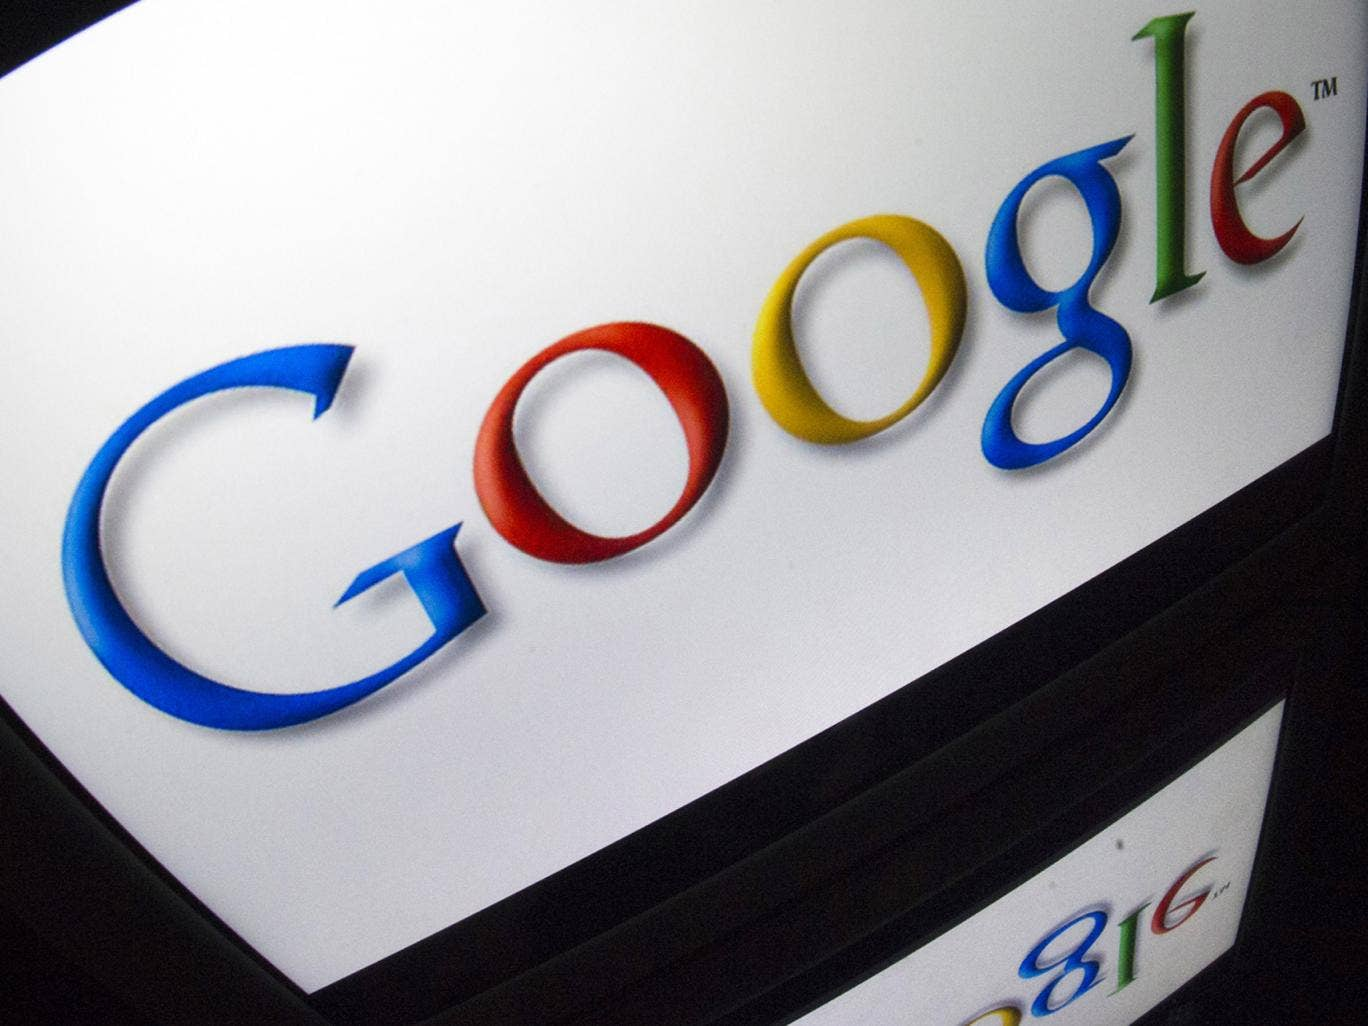 Google cut its overall tax rate by almost half thanks to the move